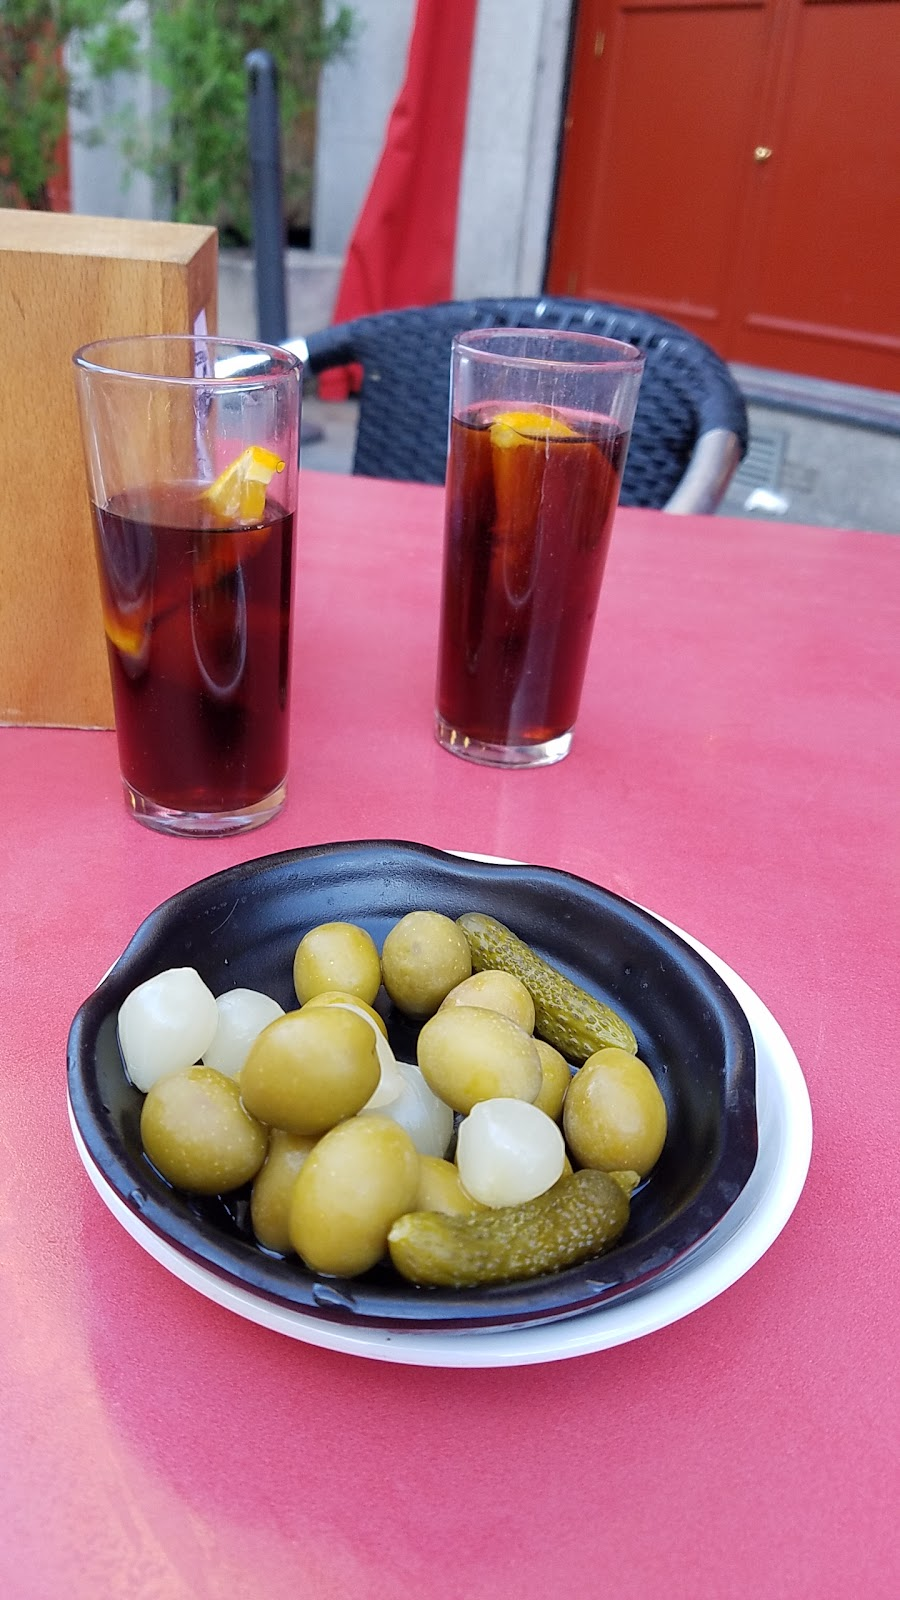 More vermouth and olives